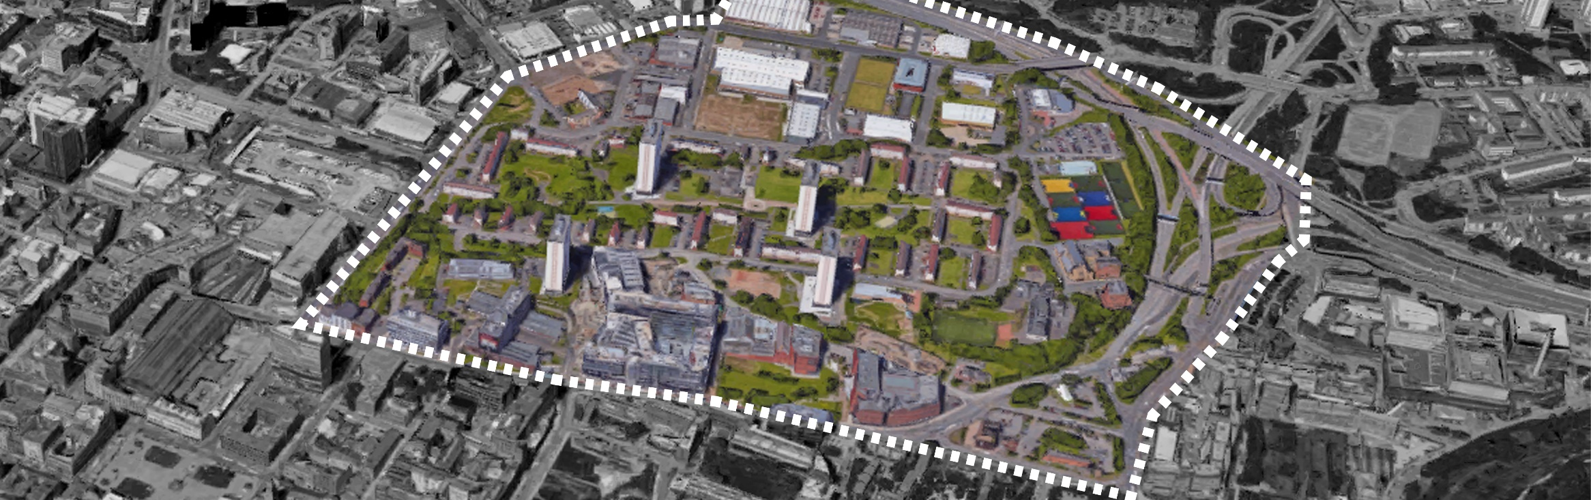 Townhead District Overview_High Res